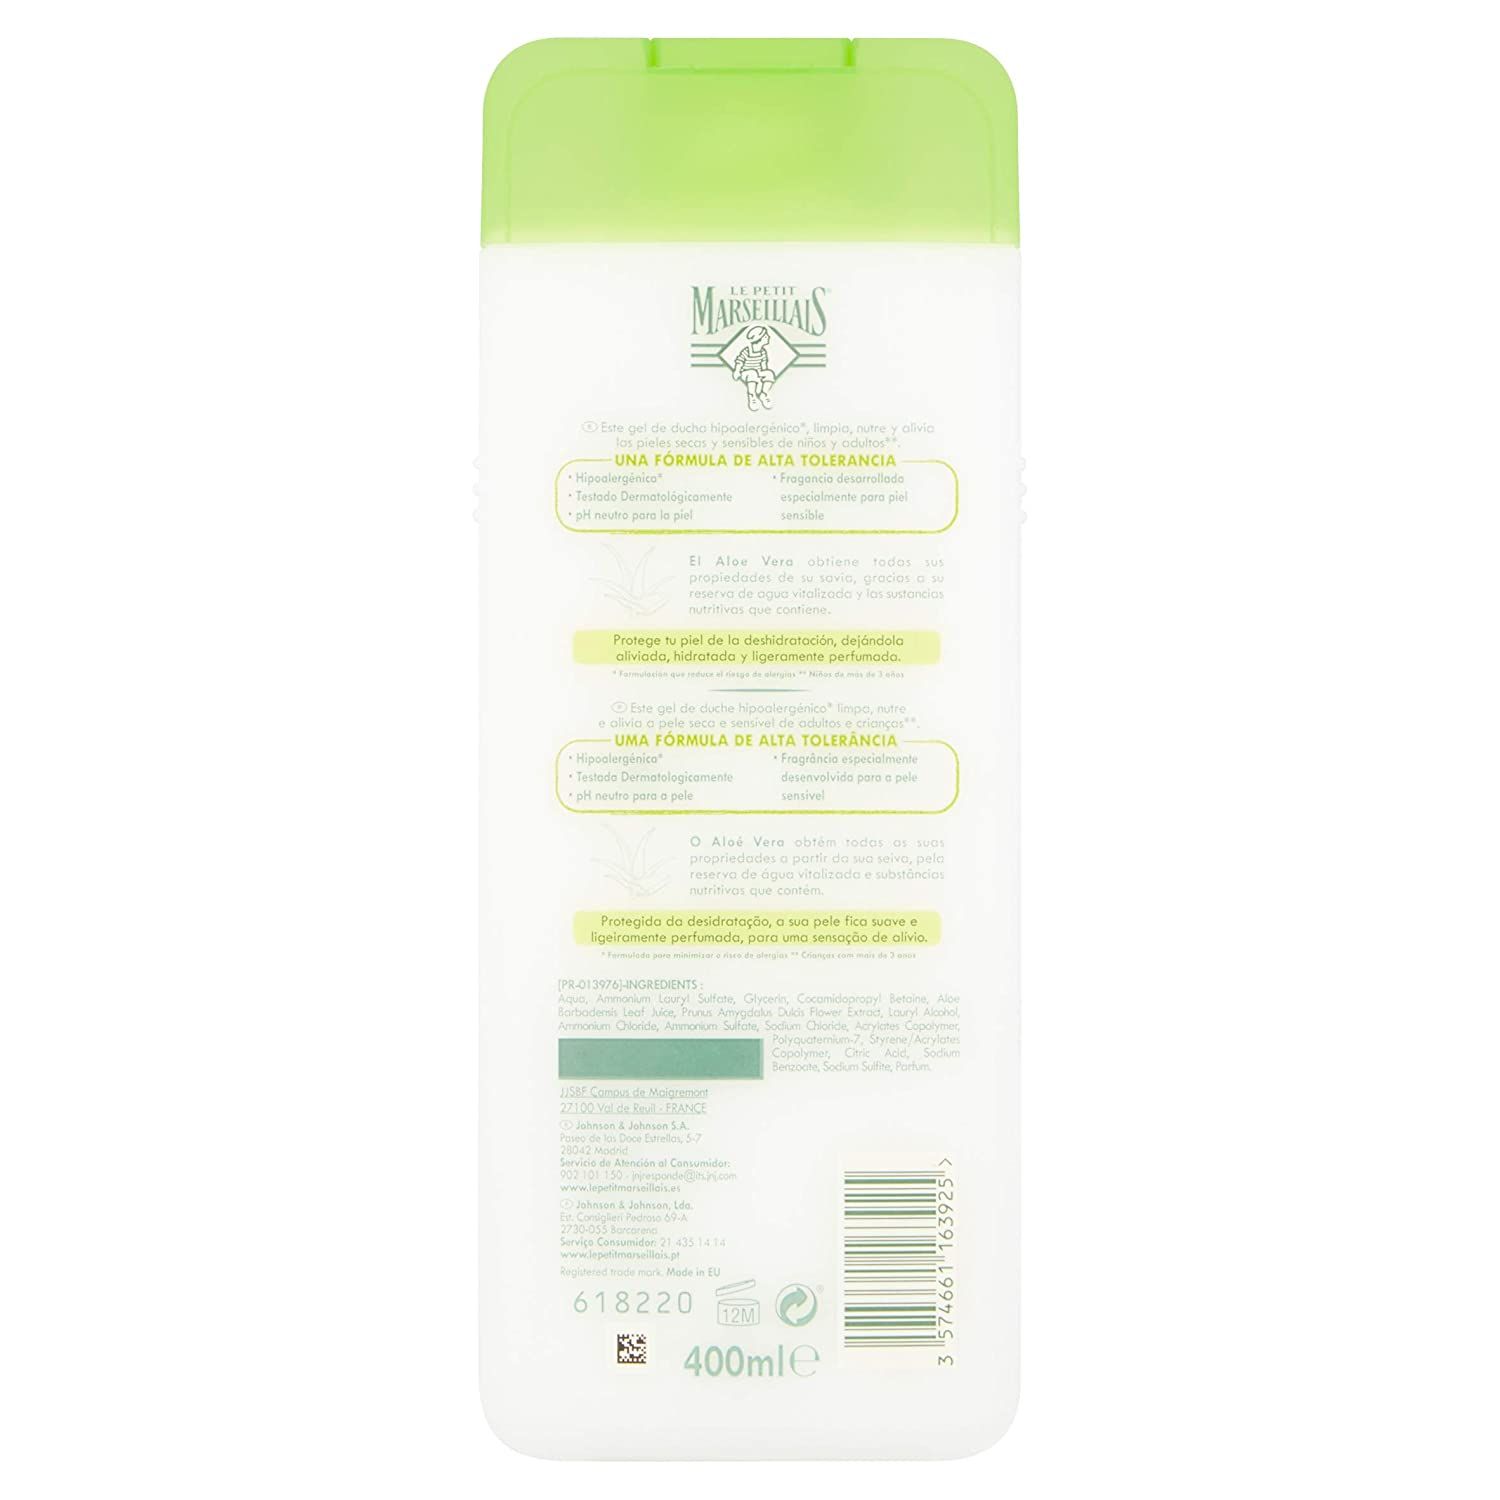 Le Petit Marsellais - Gel Leche de Almendras Dulces, 400 ml: Amazon.es: Belleza